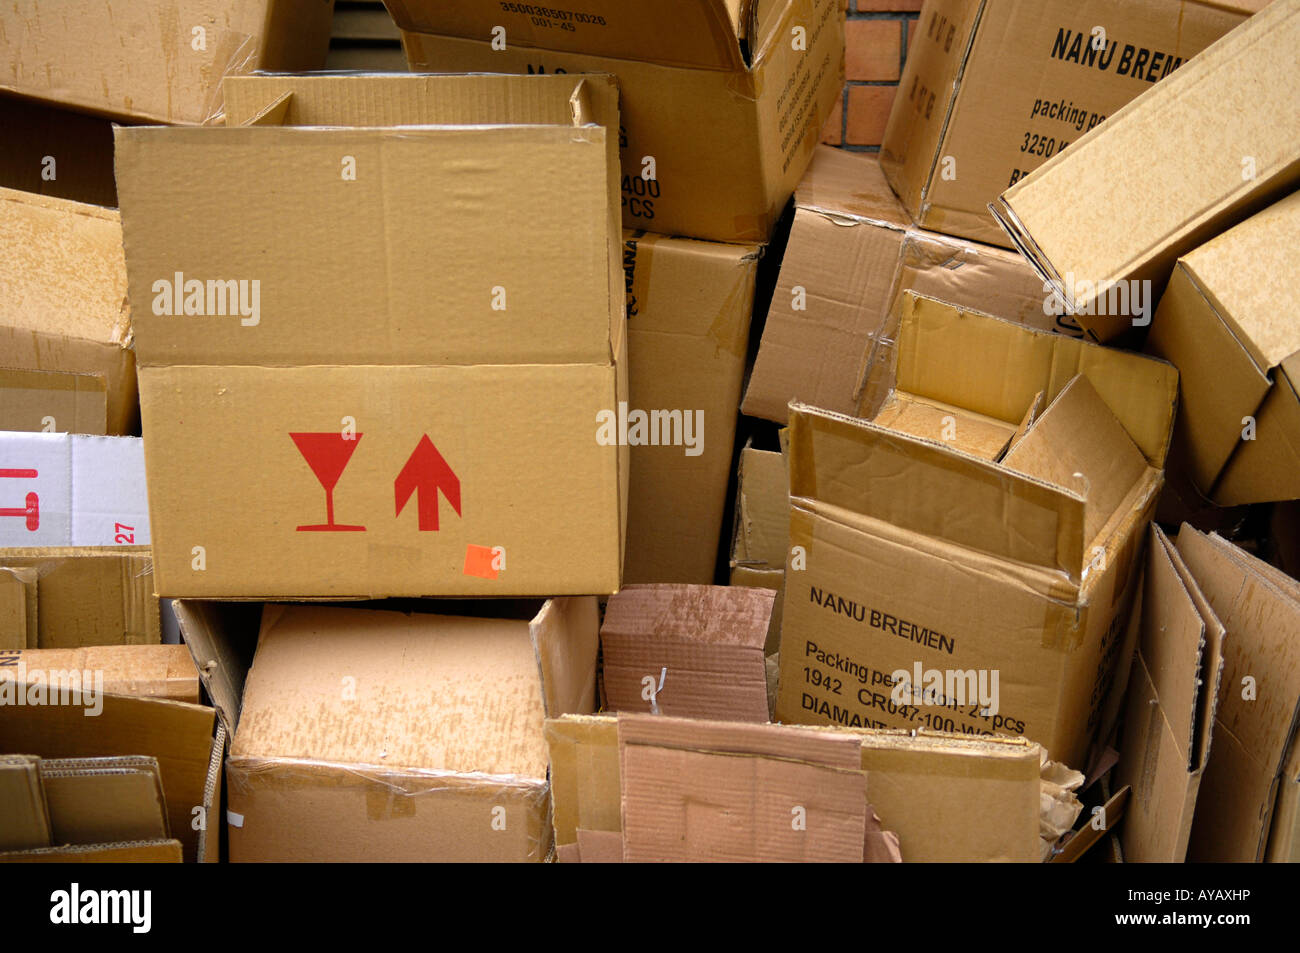 Used Cardboard Boxes Inc. - Wilshire Blvd Ste , Los Angeles, California - Rated 5 based on 9 Reviews